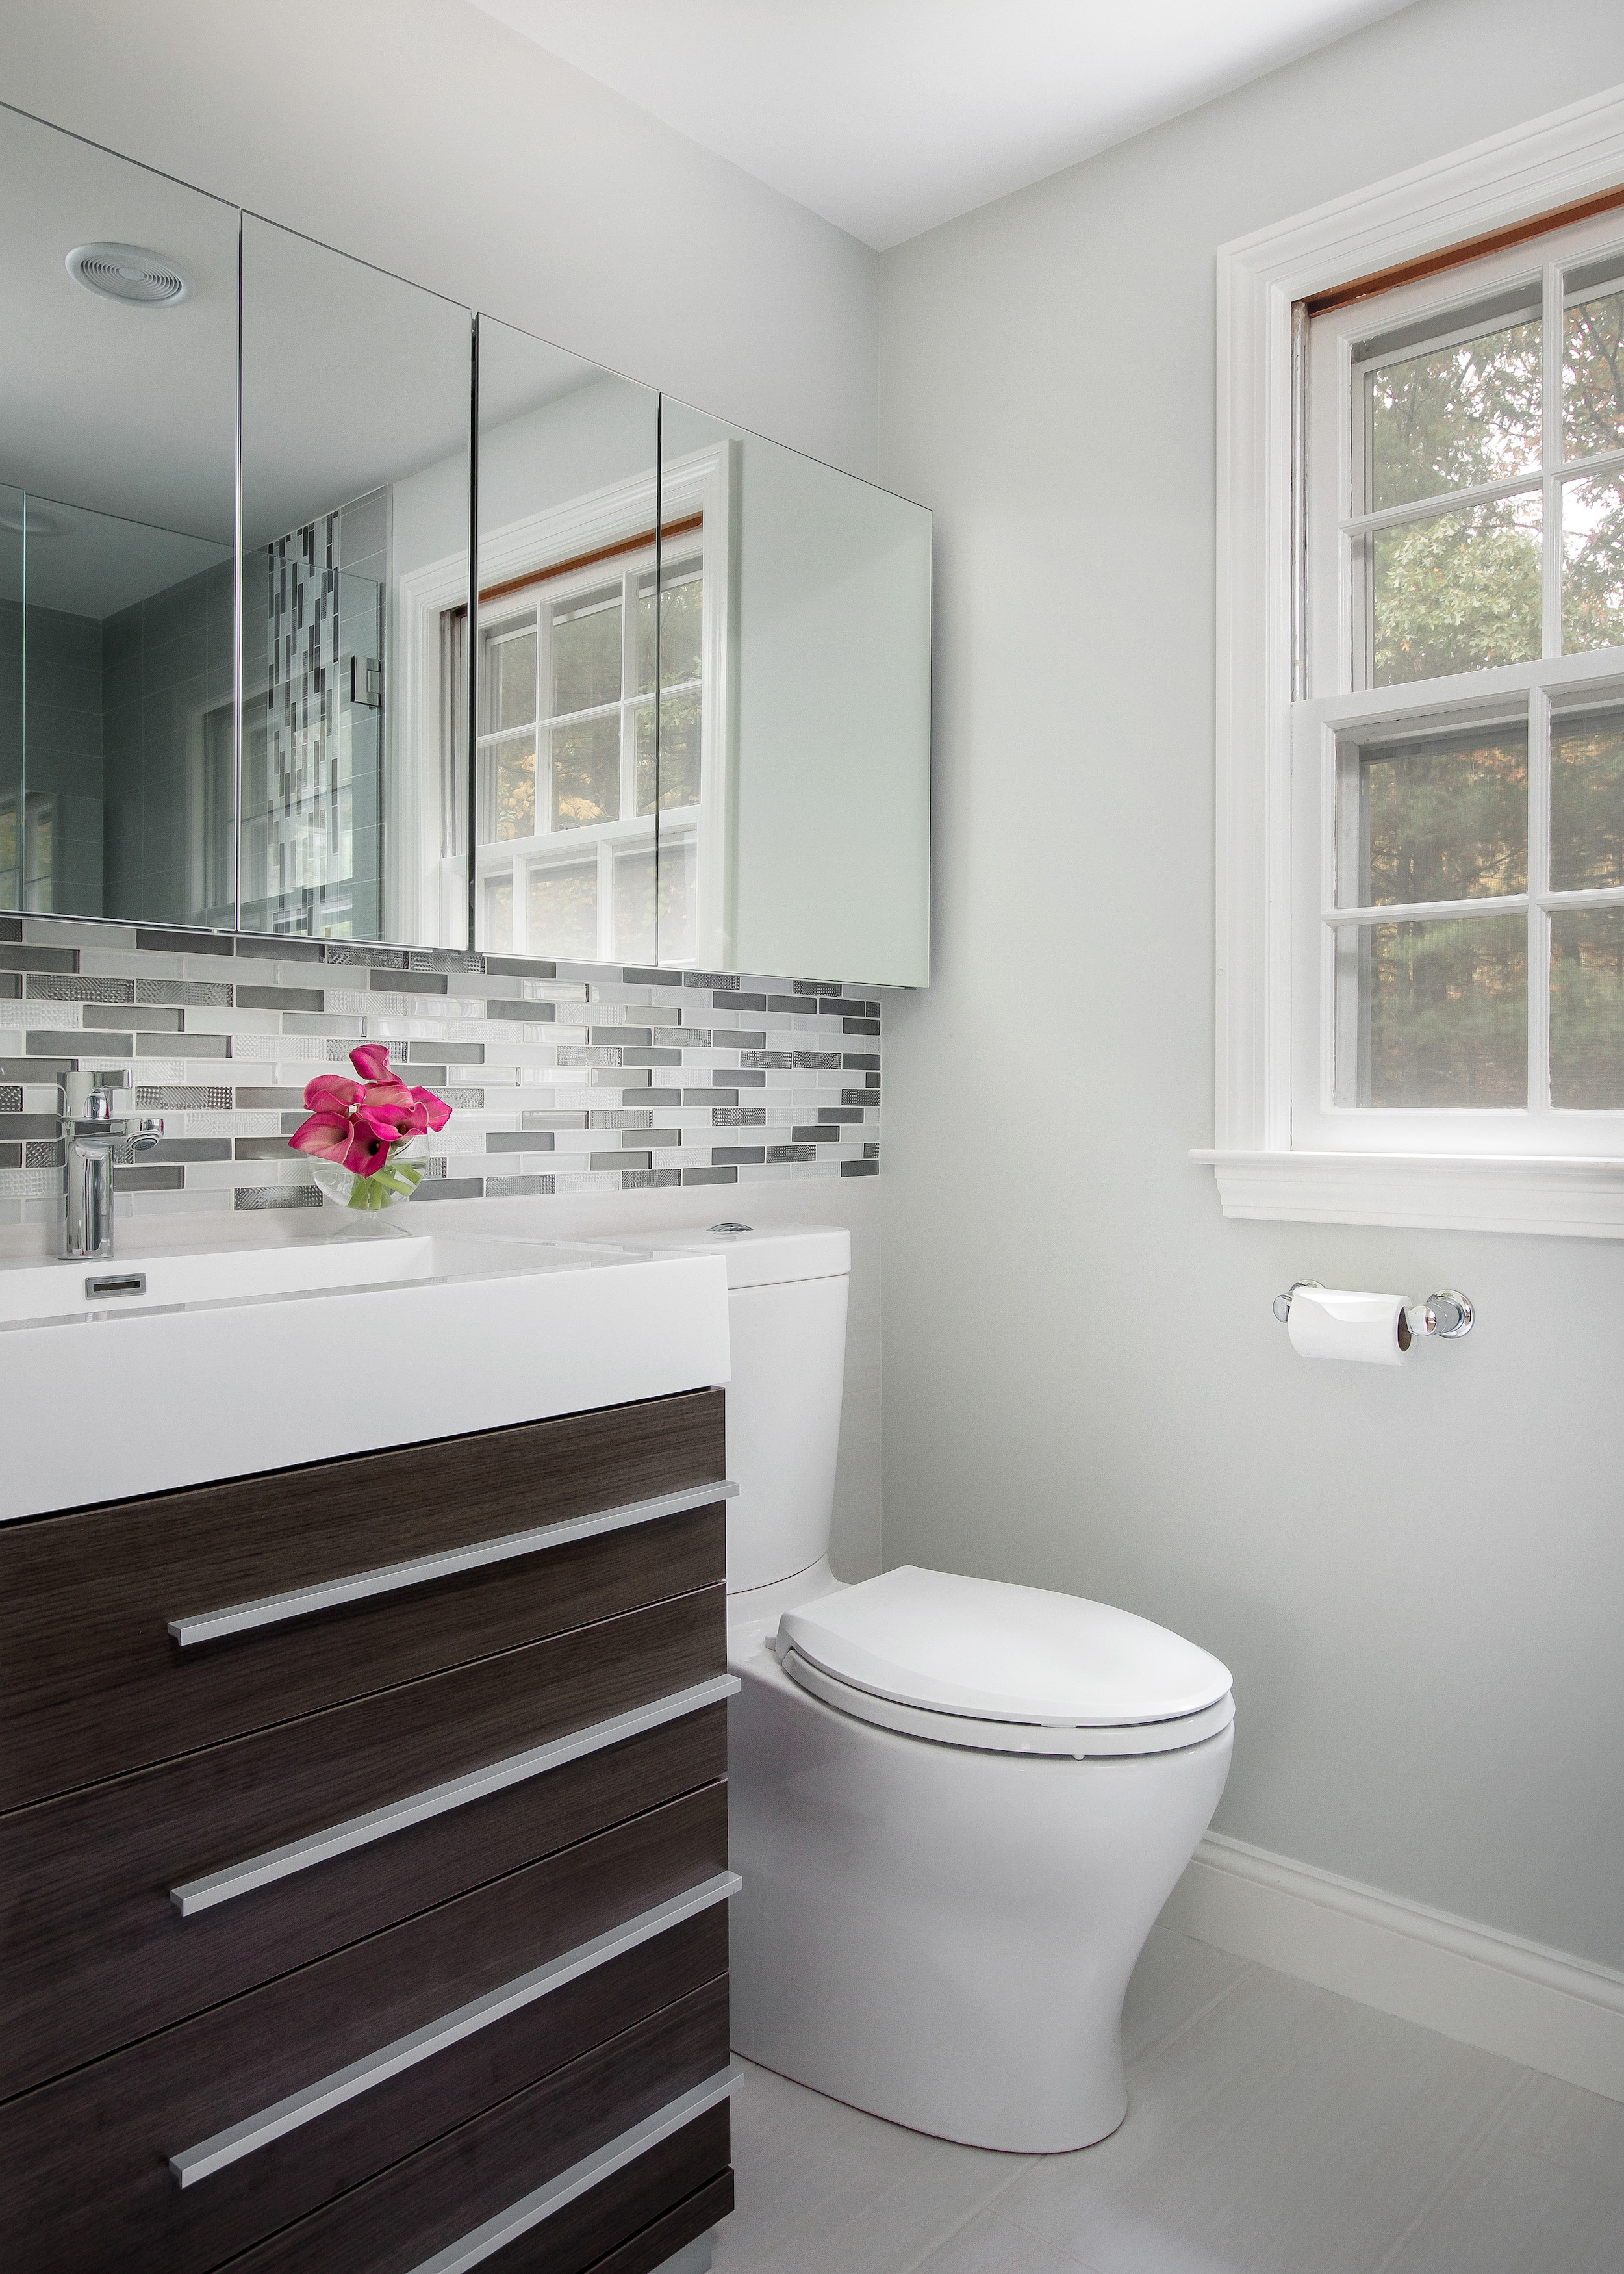 12-KitchenVisions-Master-Baths-Ensuite-Wayland.jpg